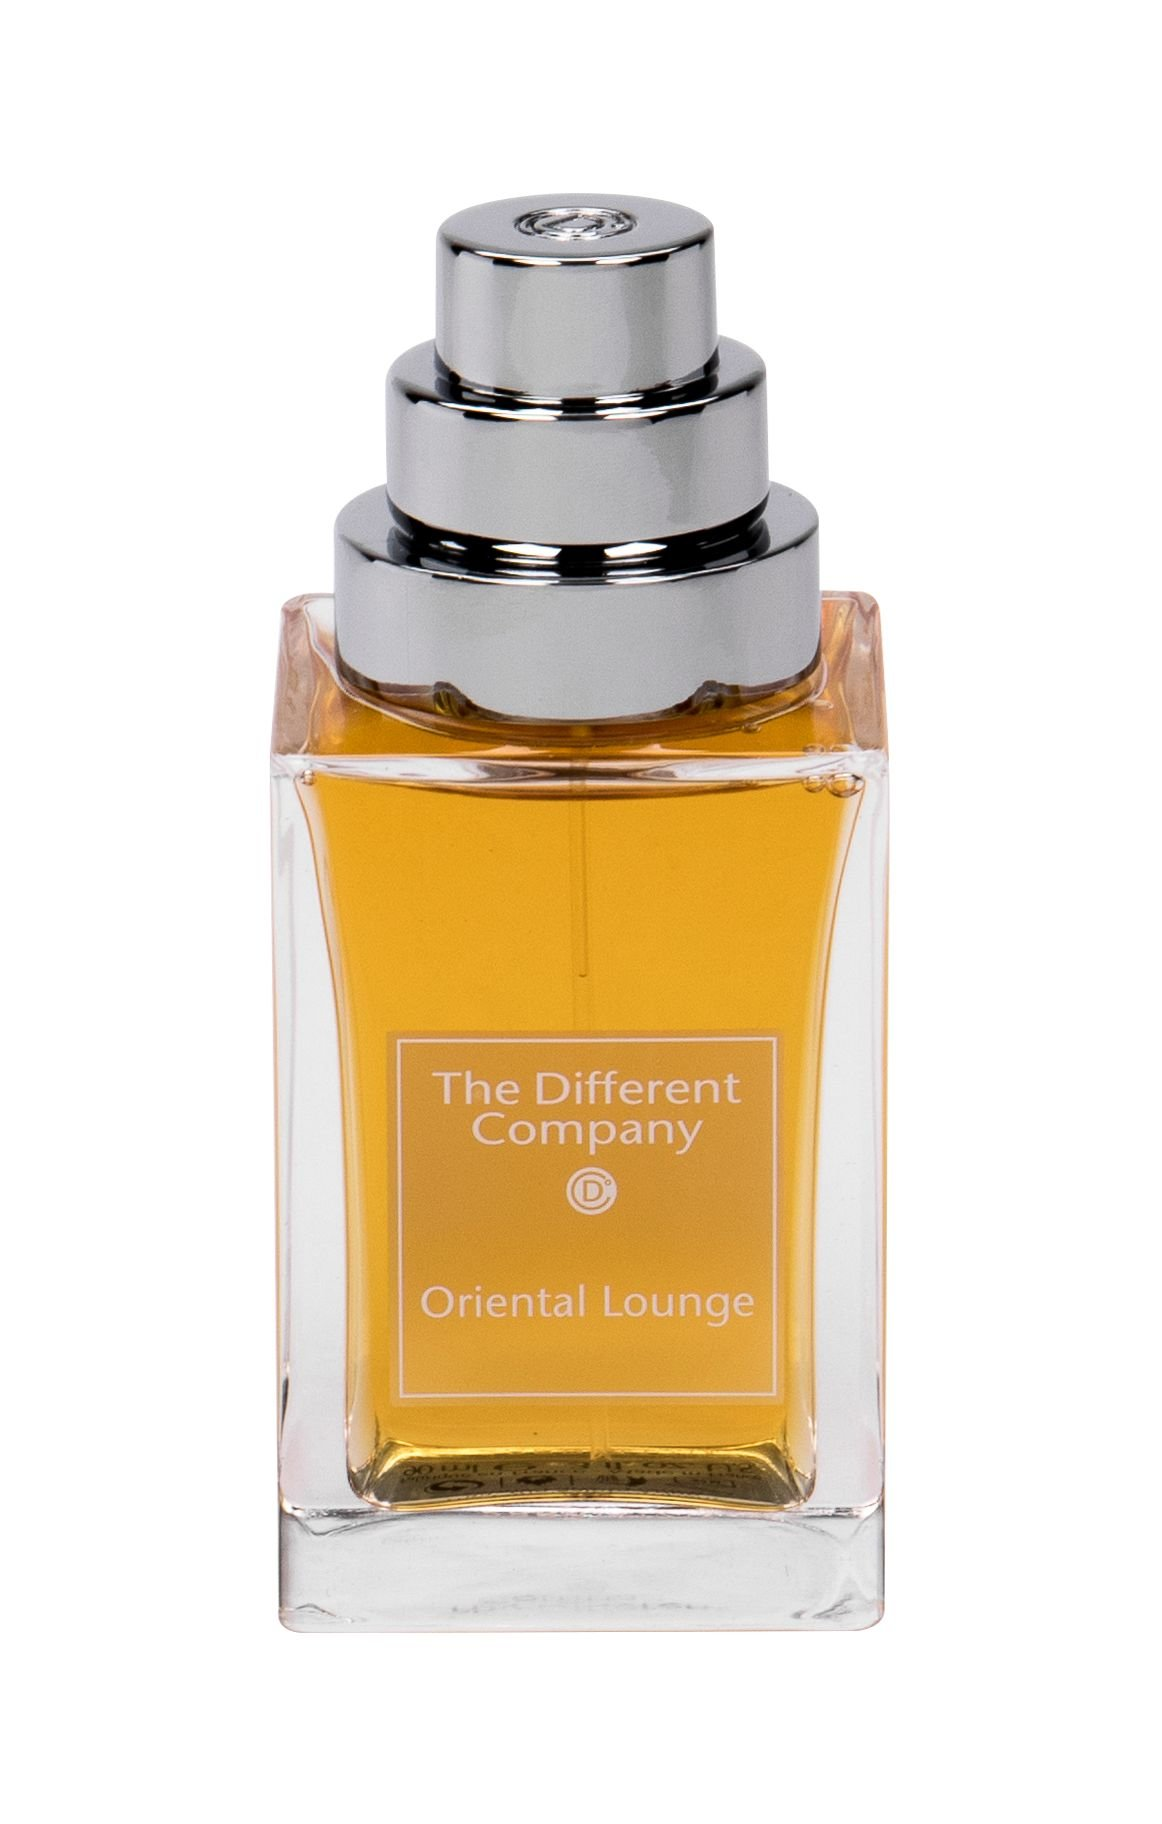 The Different Company Oriental Lounge Eau de Parfum 90ml